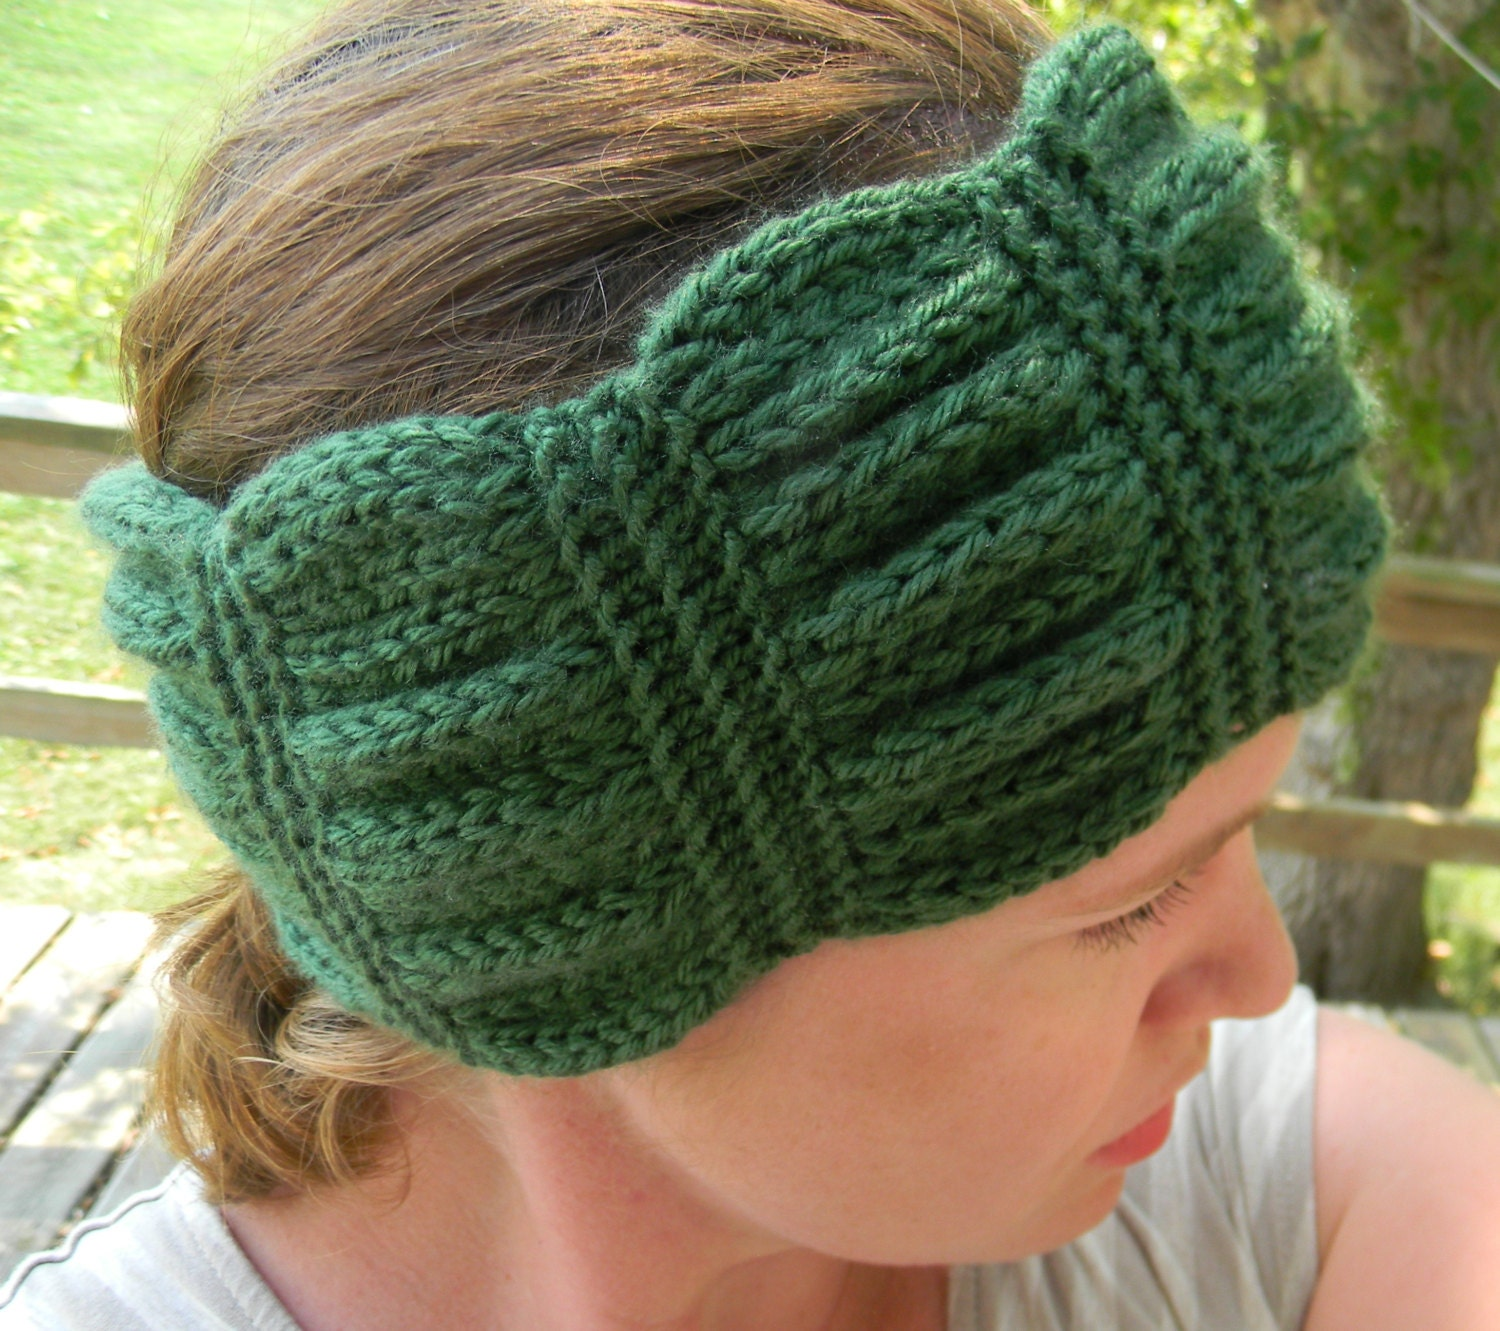 Hippie Headband Knitting Pattern : Knitting Pattern - Betty headband, knit headband pattern ...